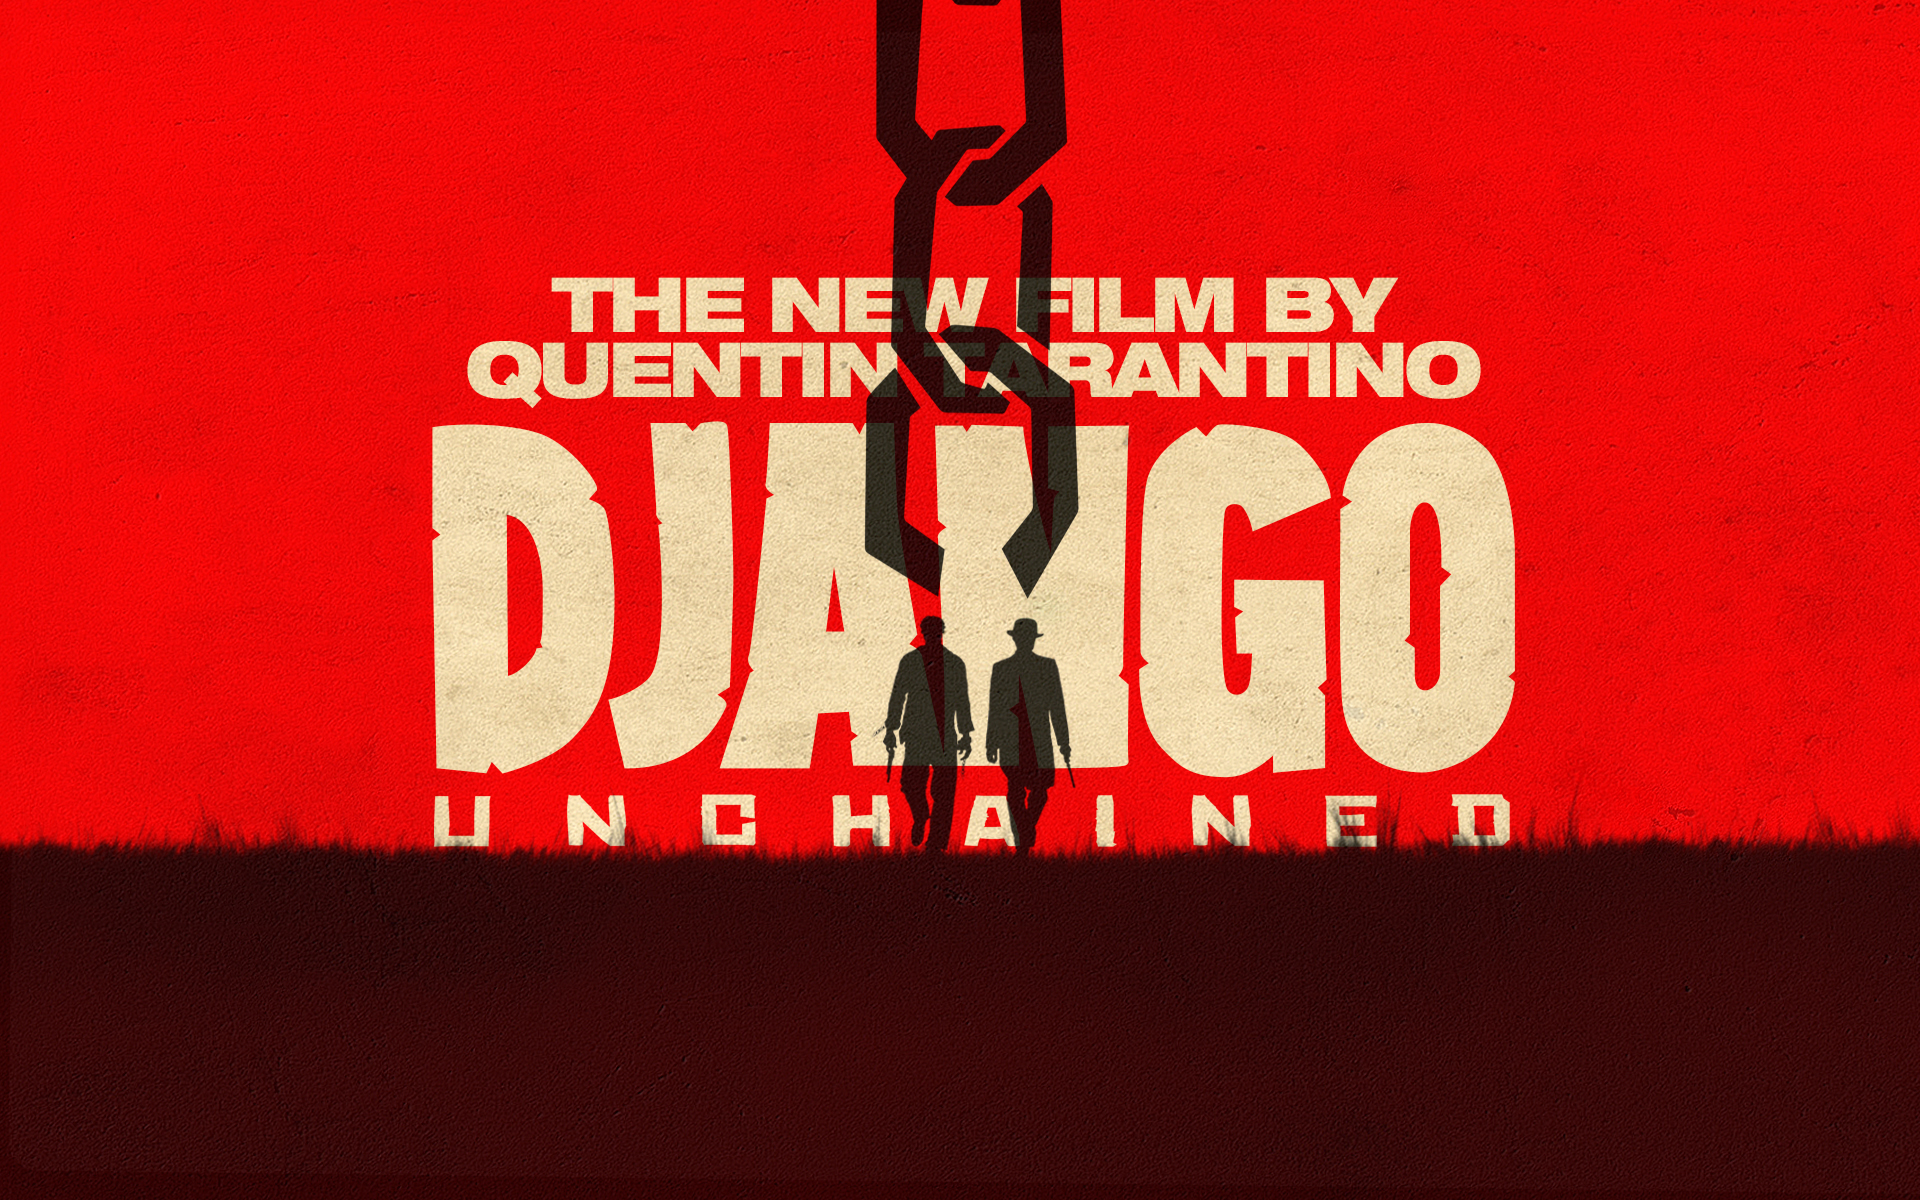 Background image django - While A Bit Down On His Last Effort Django Unchained Is Still Another Triumph For